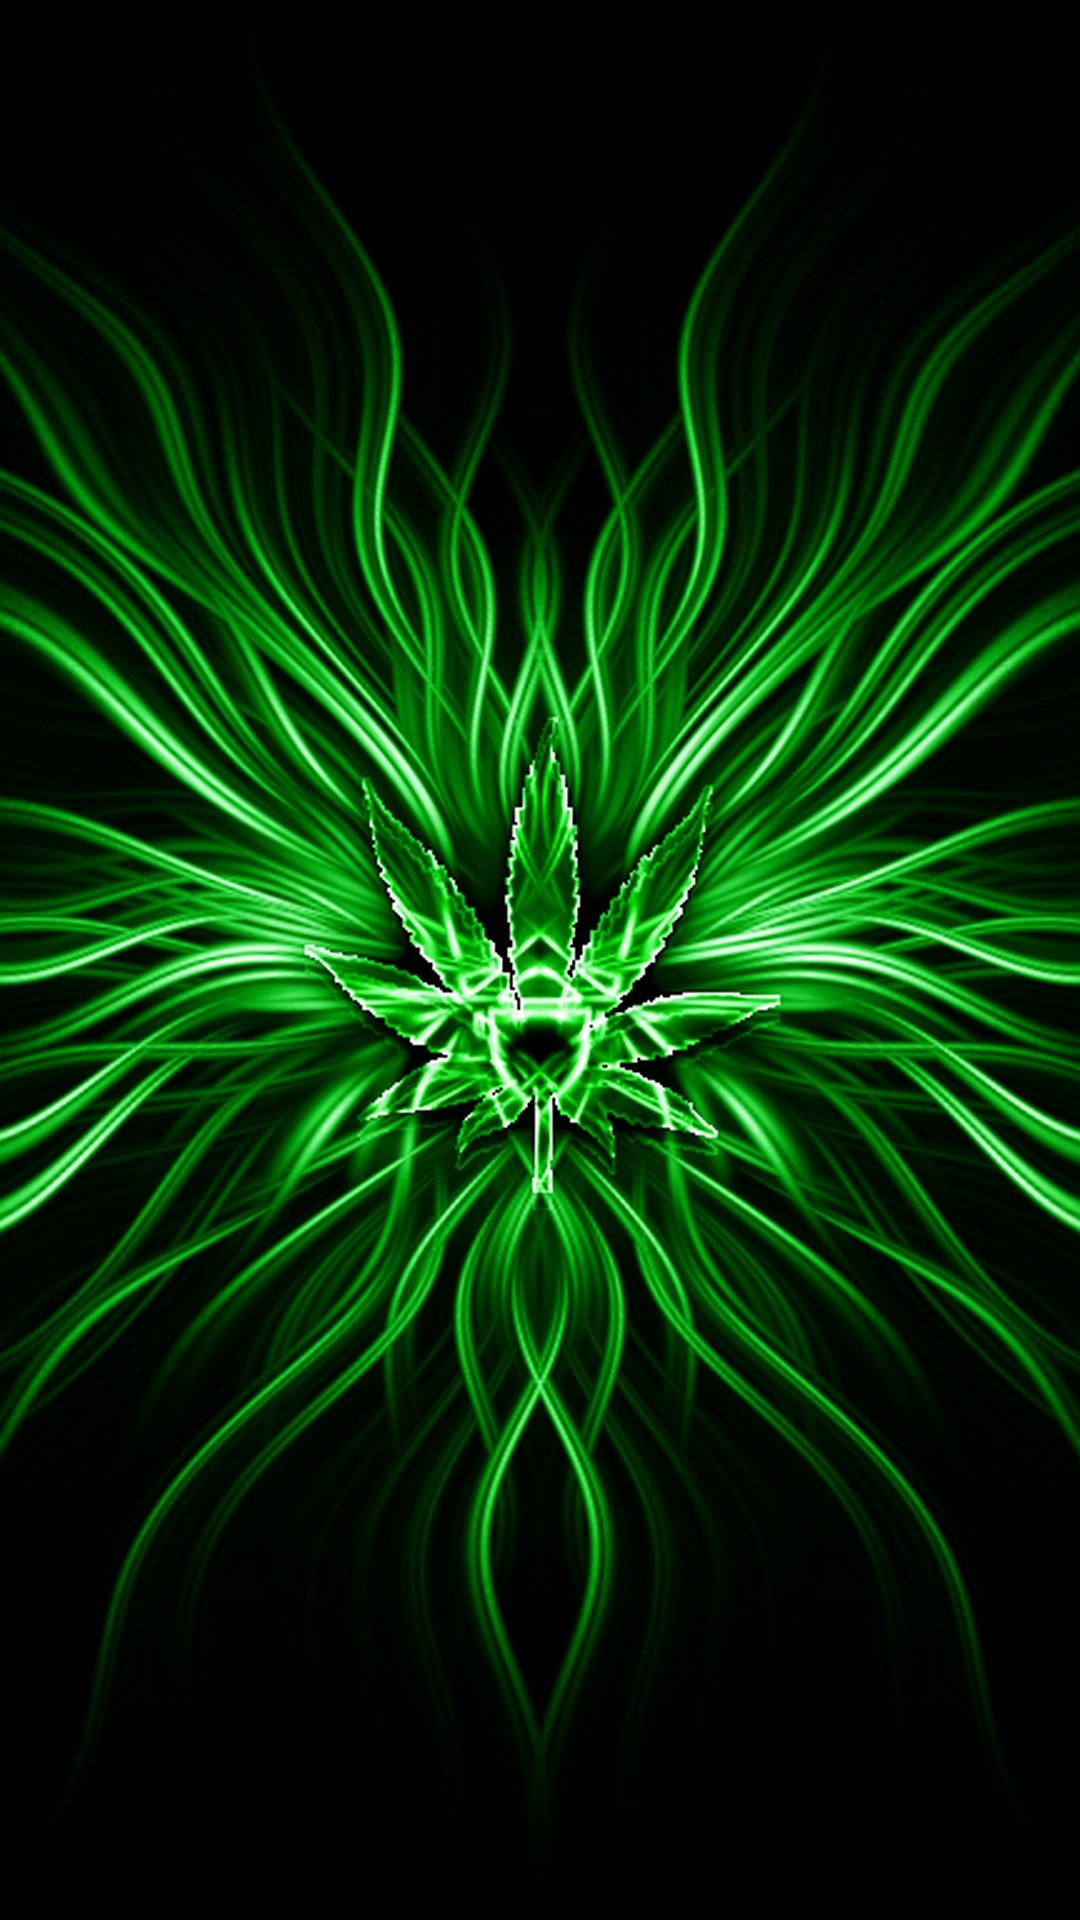 Cool Neon Wallpapaer Wallpaper Android In 2020 Neon Wallpaper Green Wallpaper Heart Iphone Wallpaper